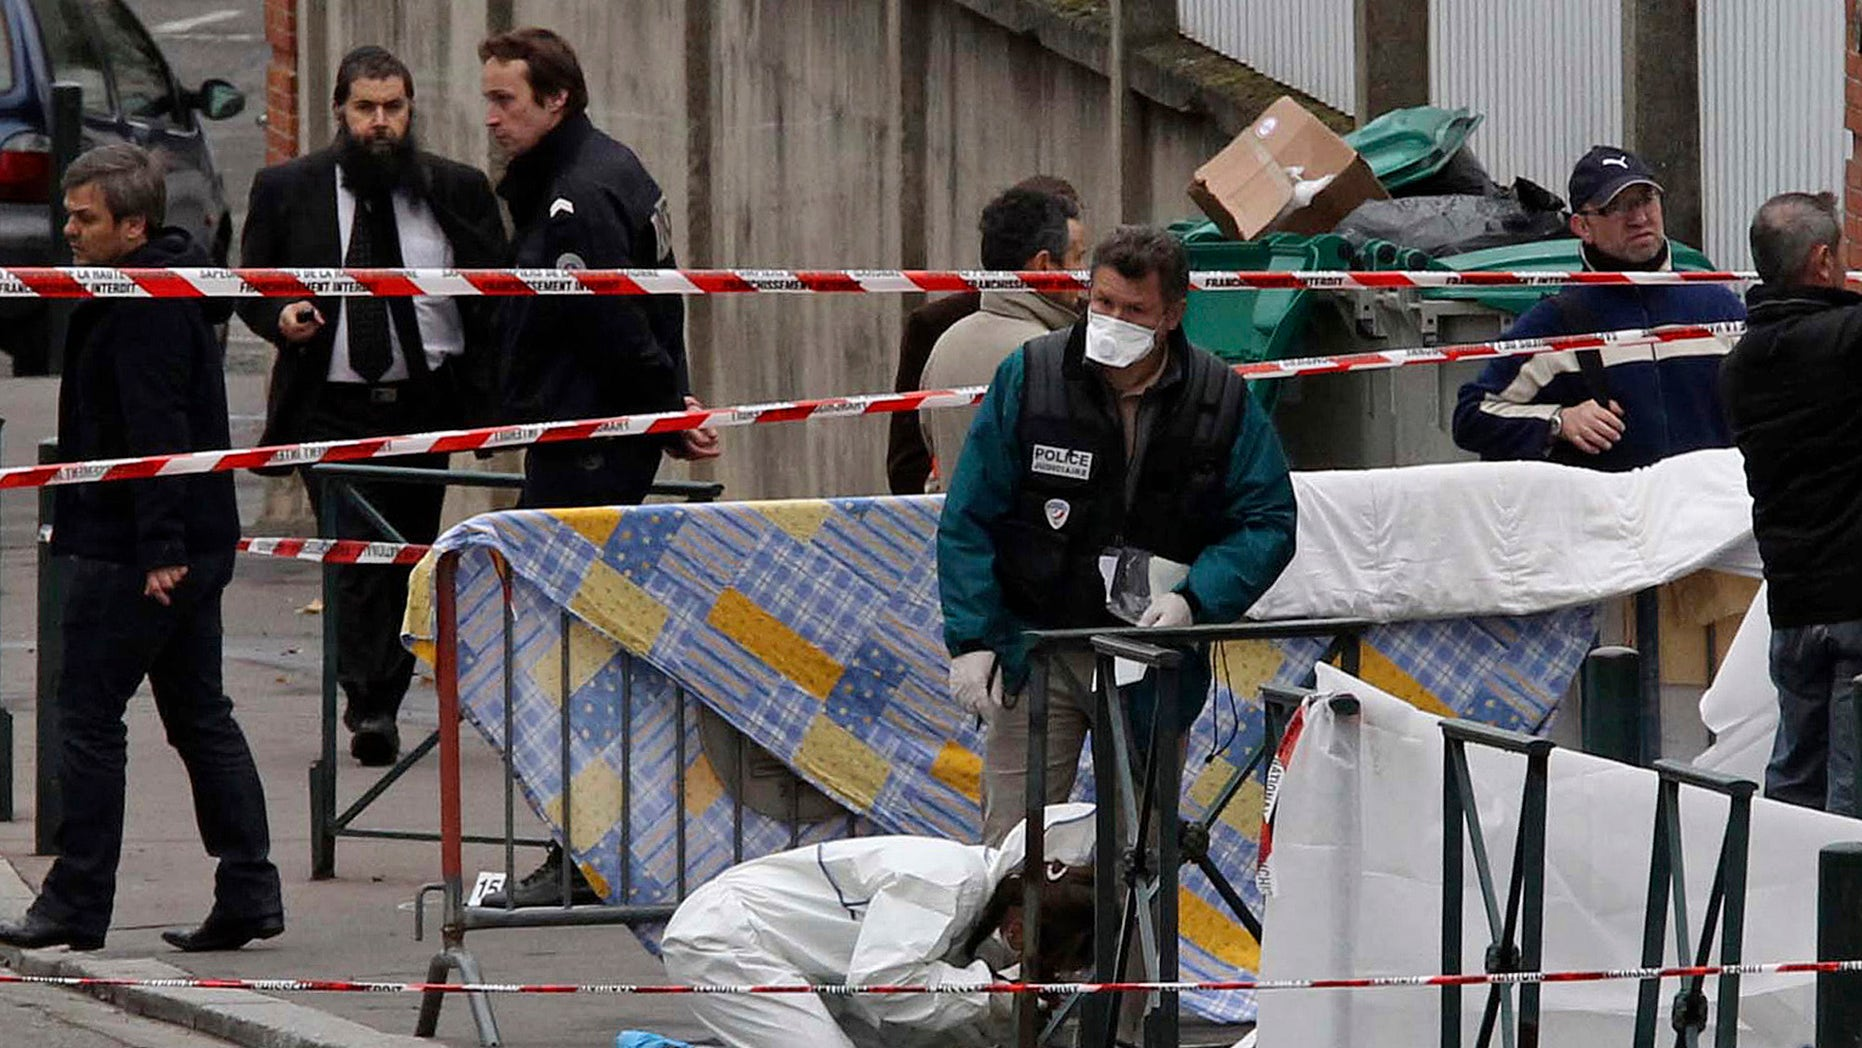 March 19, 2012: In this file photo, police officers gather at the site of a shooting where a gunman opened fire in front of a Jewish school in a city in Toulouse, southwestern France. Israeli researchers and Jewish leaders on Sunday reported 30 percent jump in anti-Semitic violence and vandalism last year.